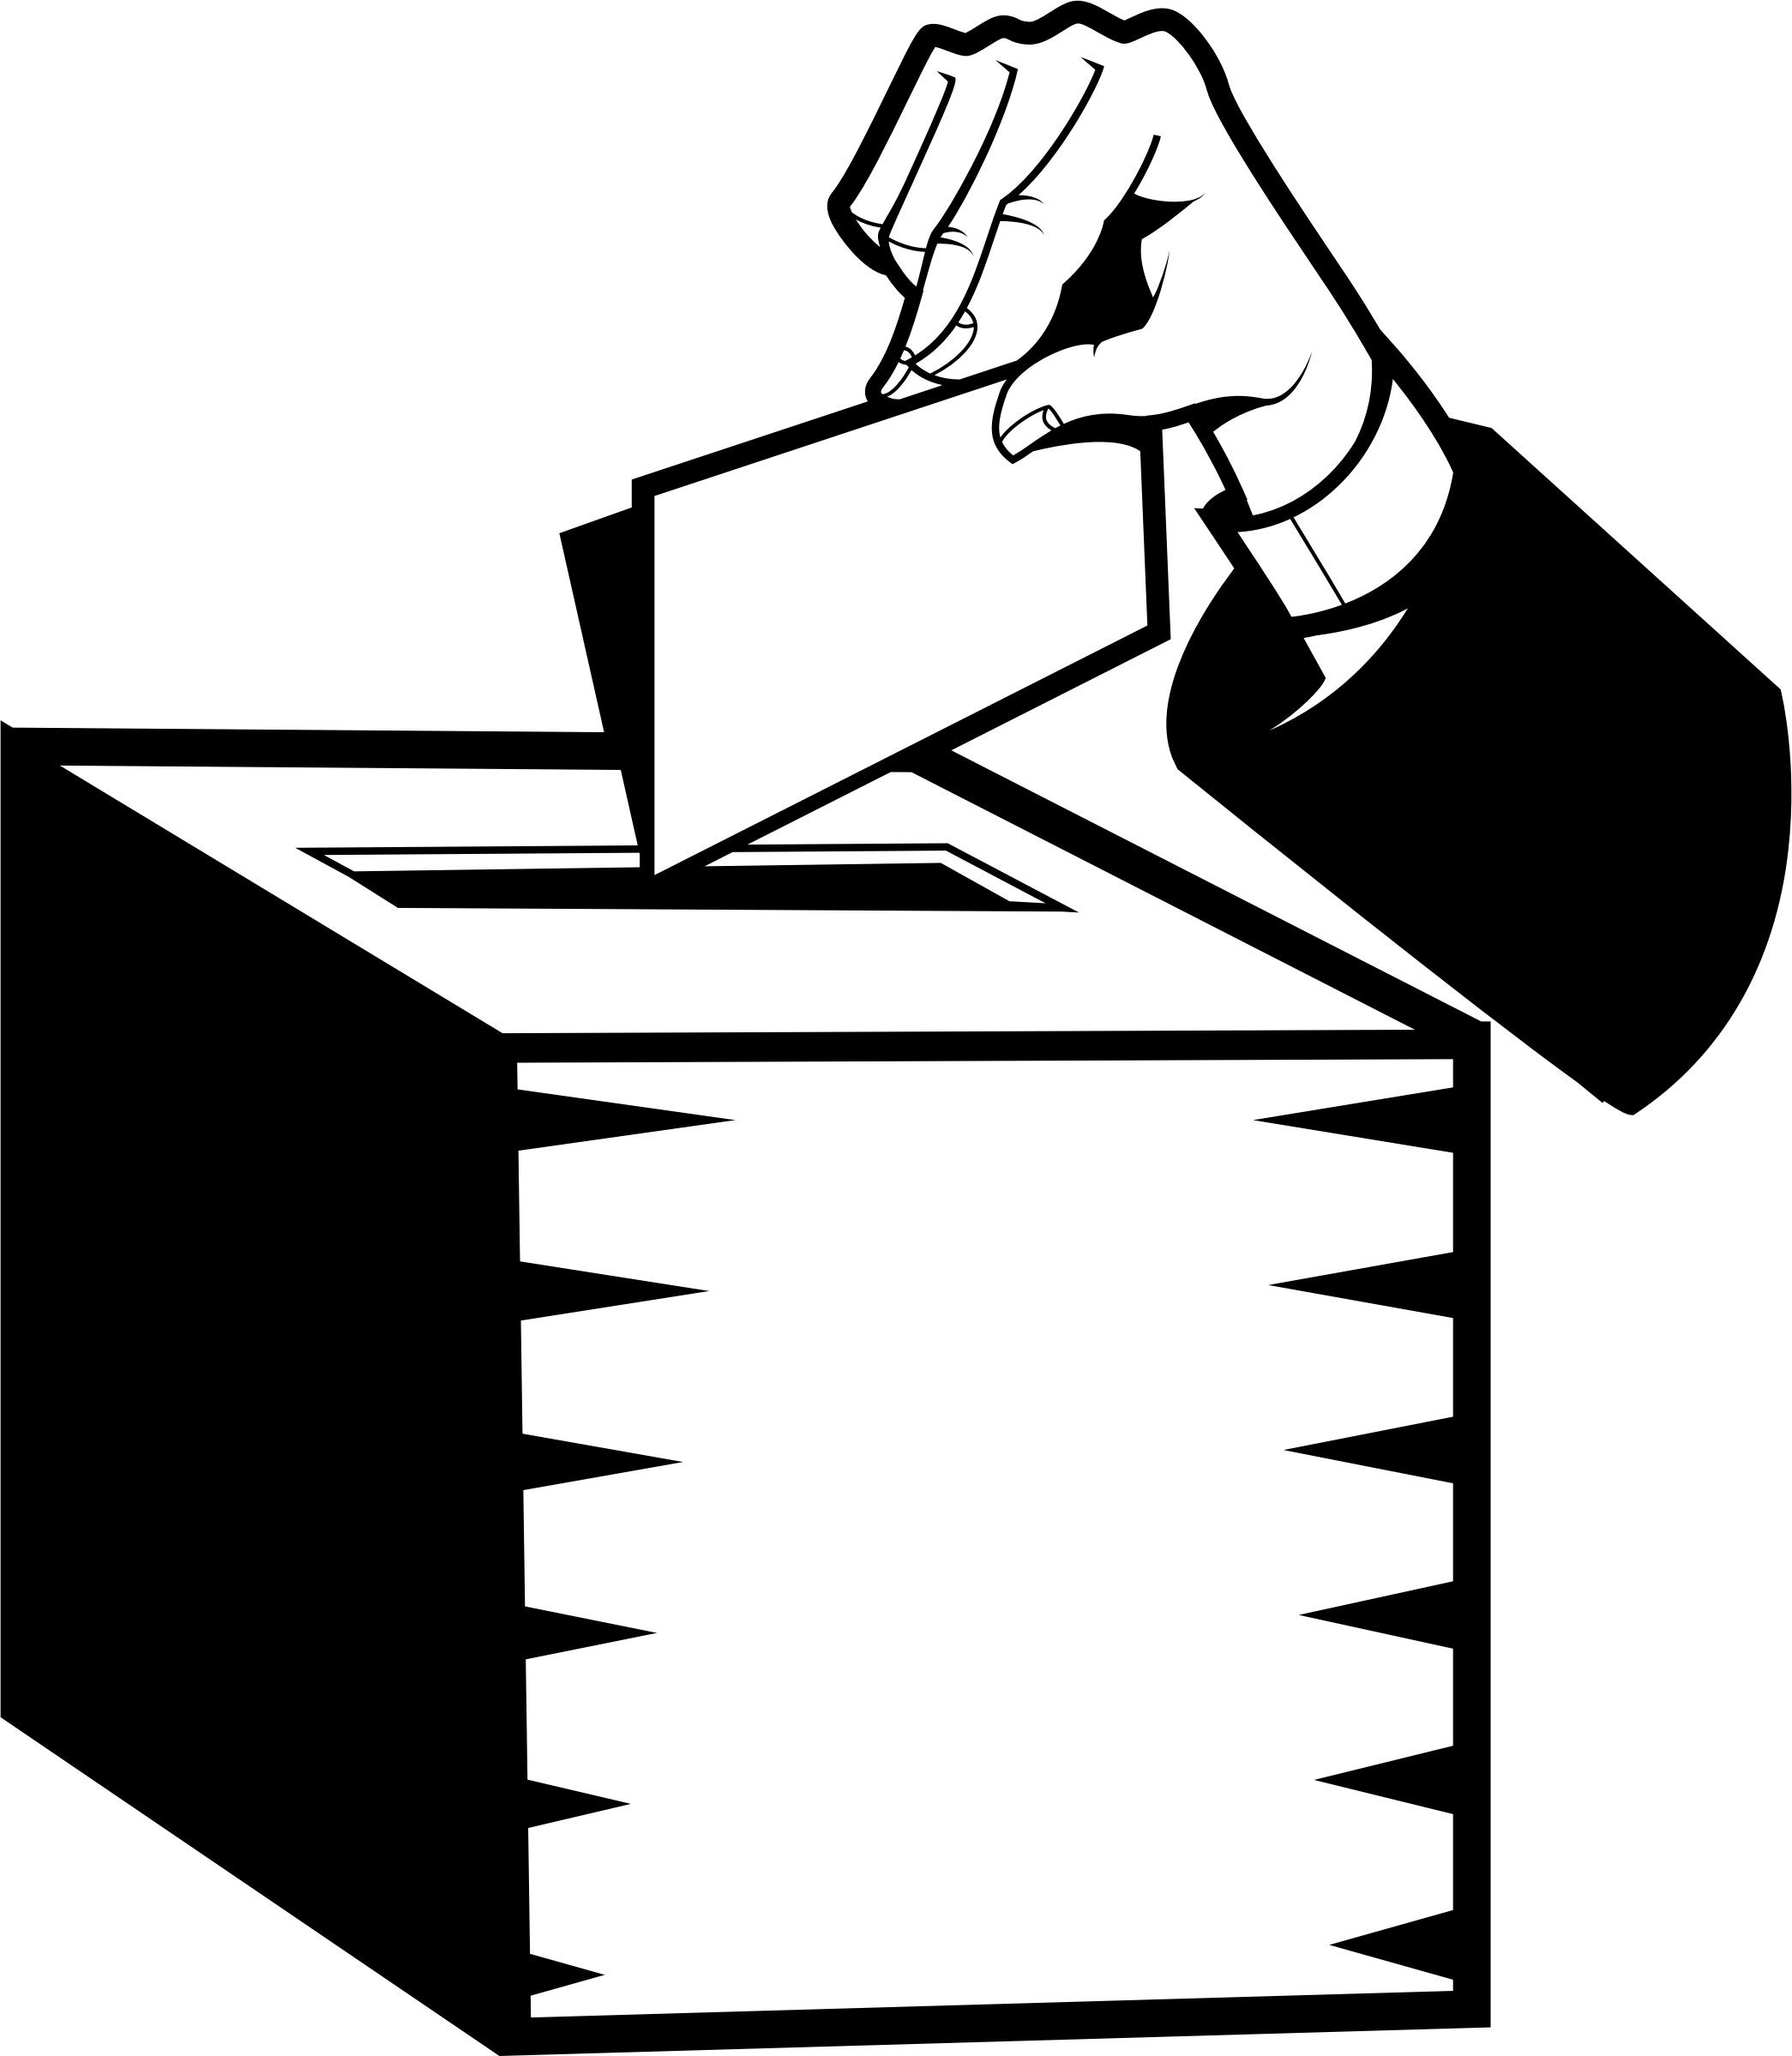 svg Vote clipart black and white. Box big image png.